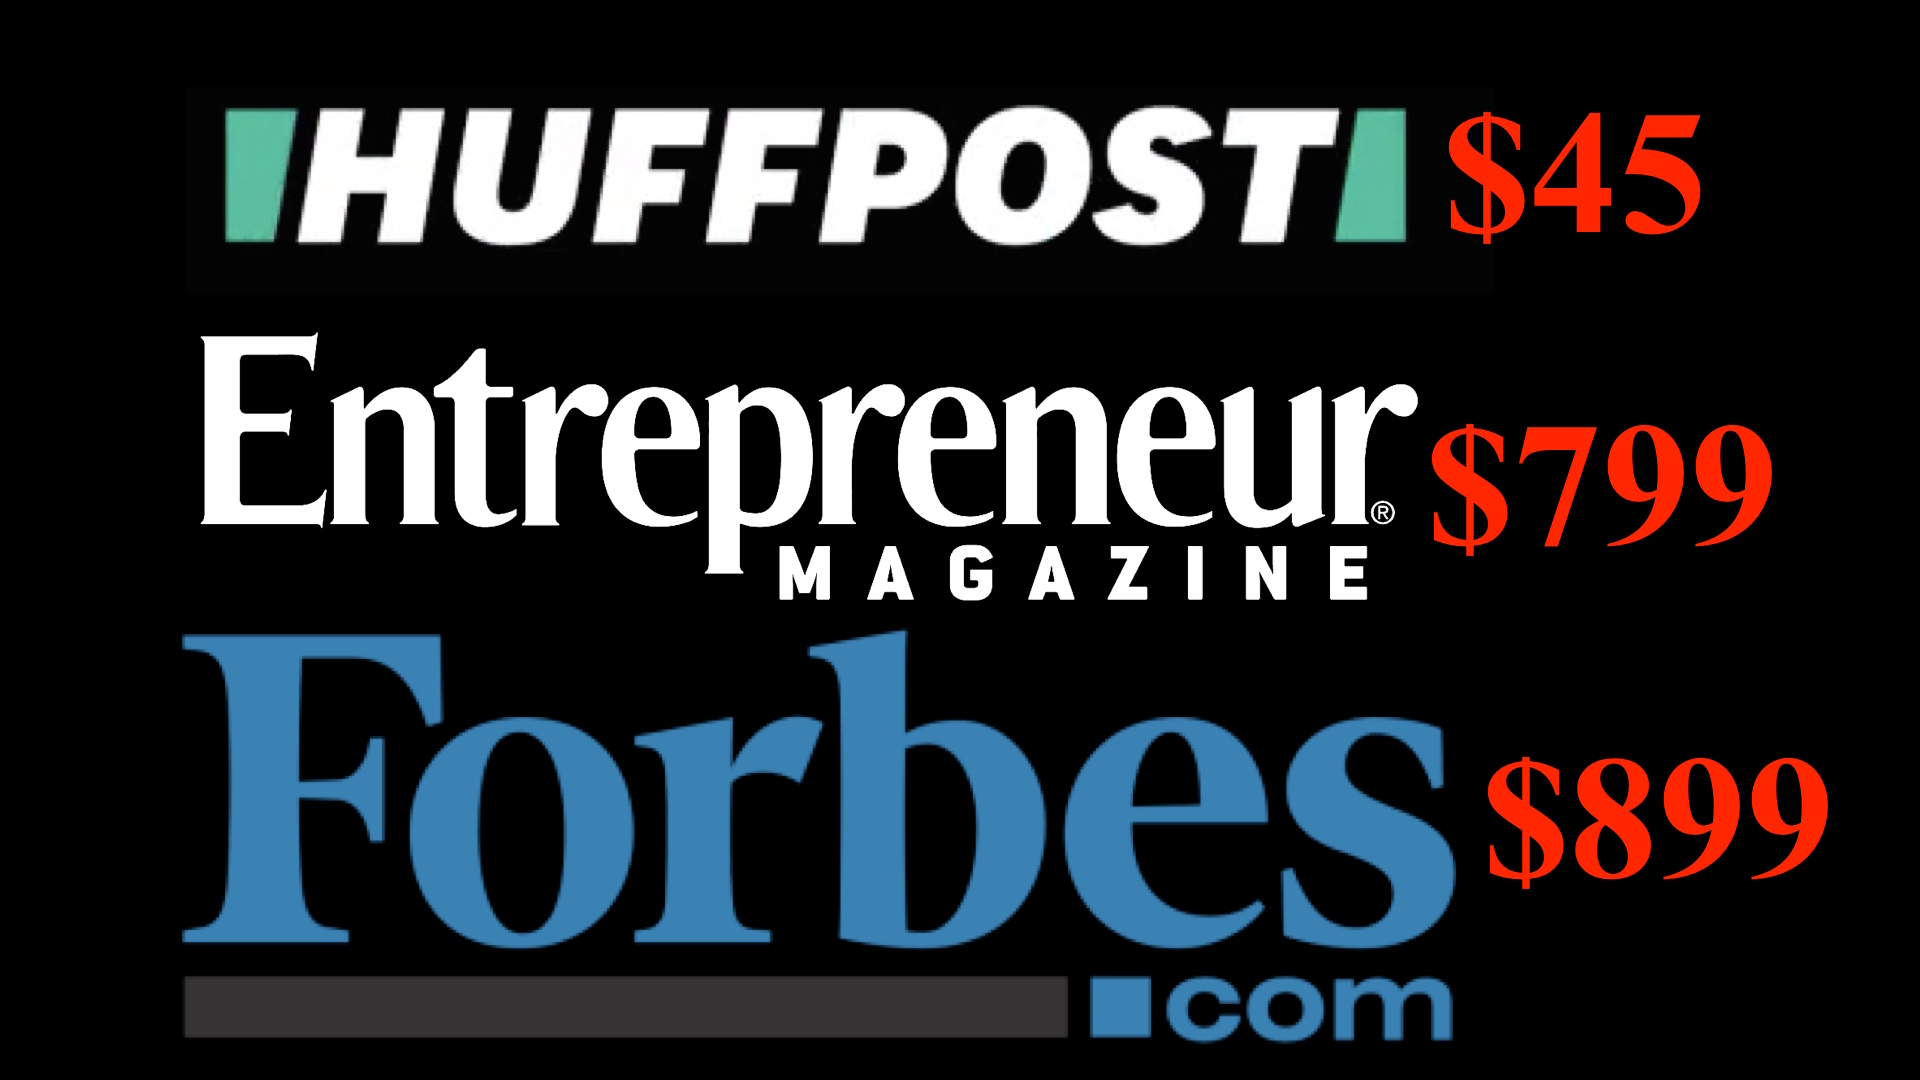 What's on Forbes Entrepreneur